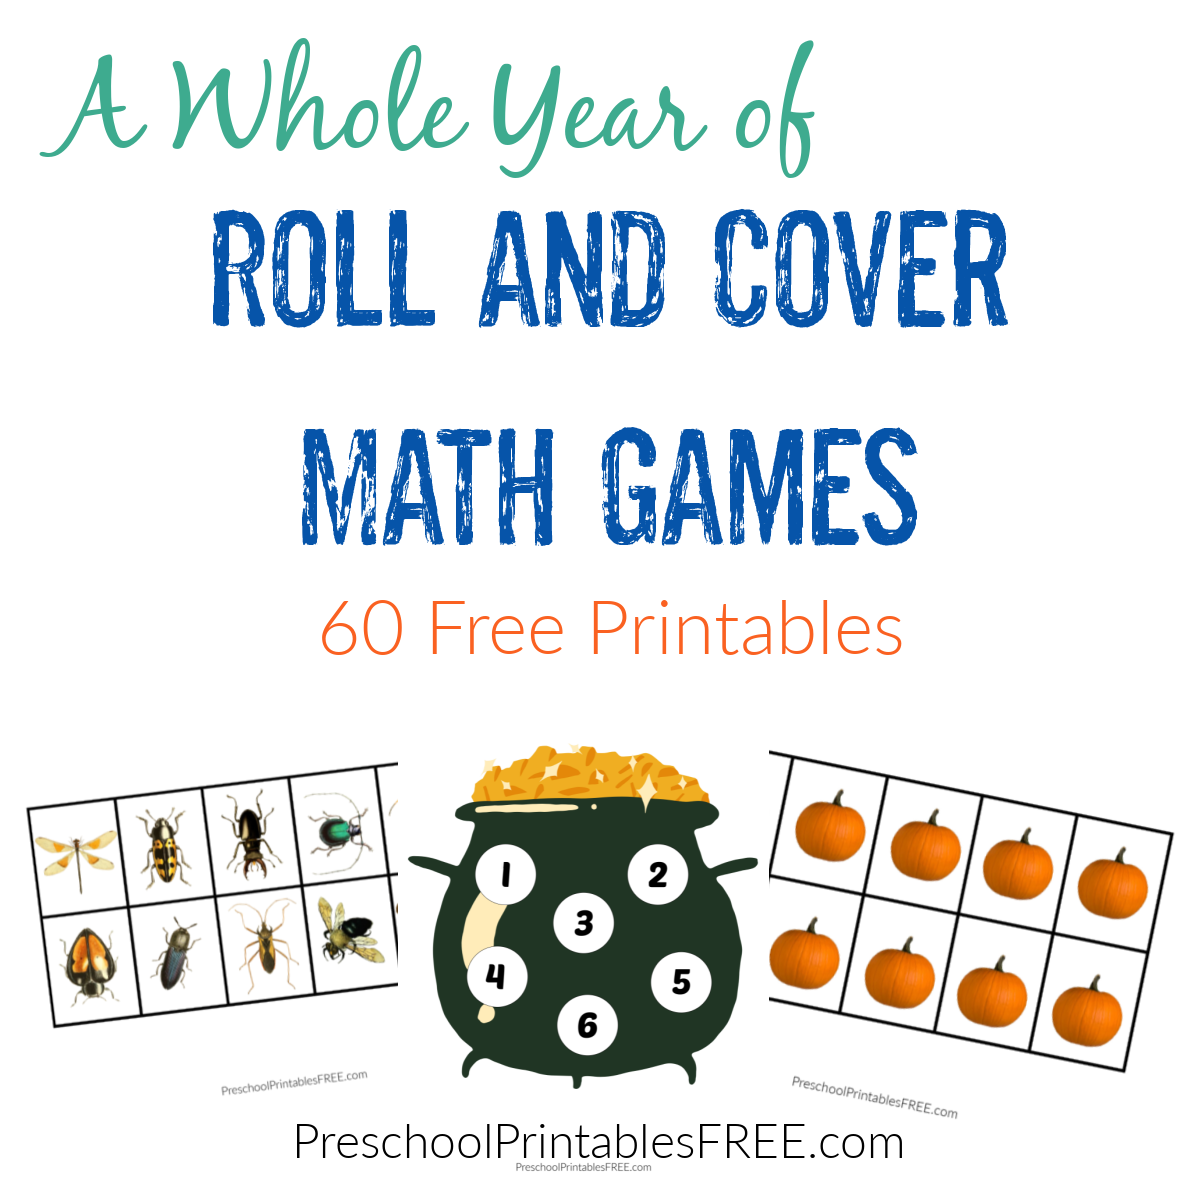 Roll and Cover Dice Games Printable